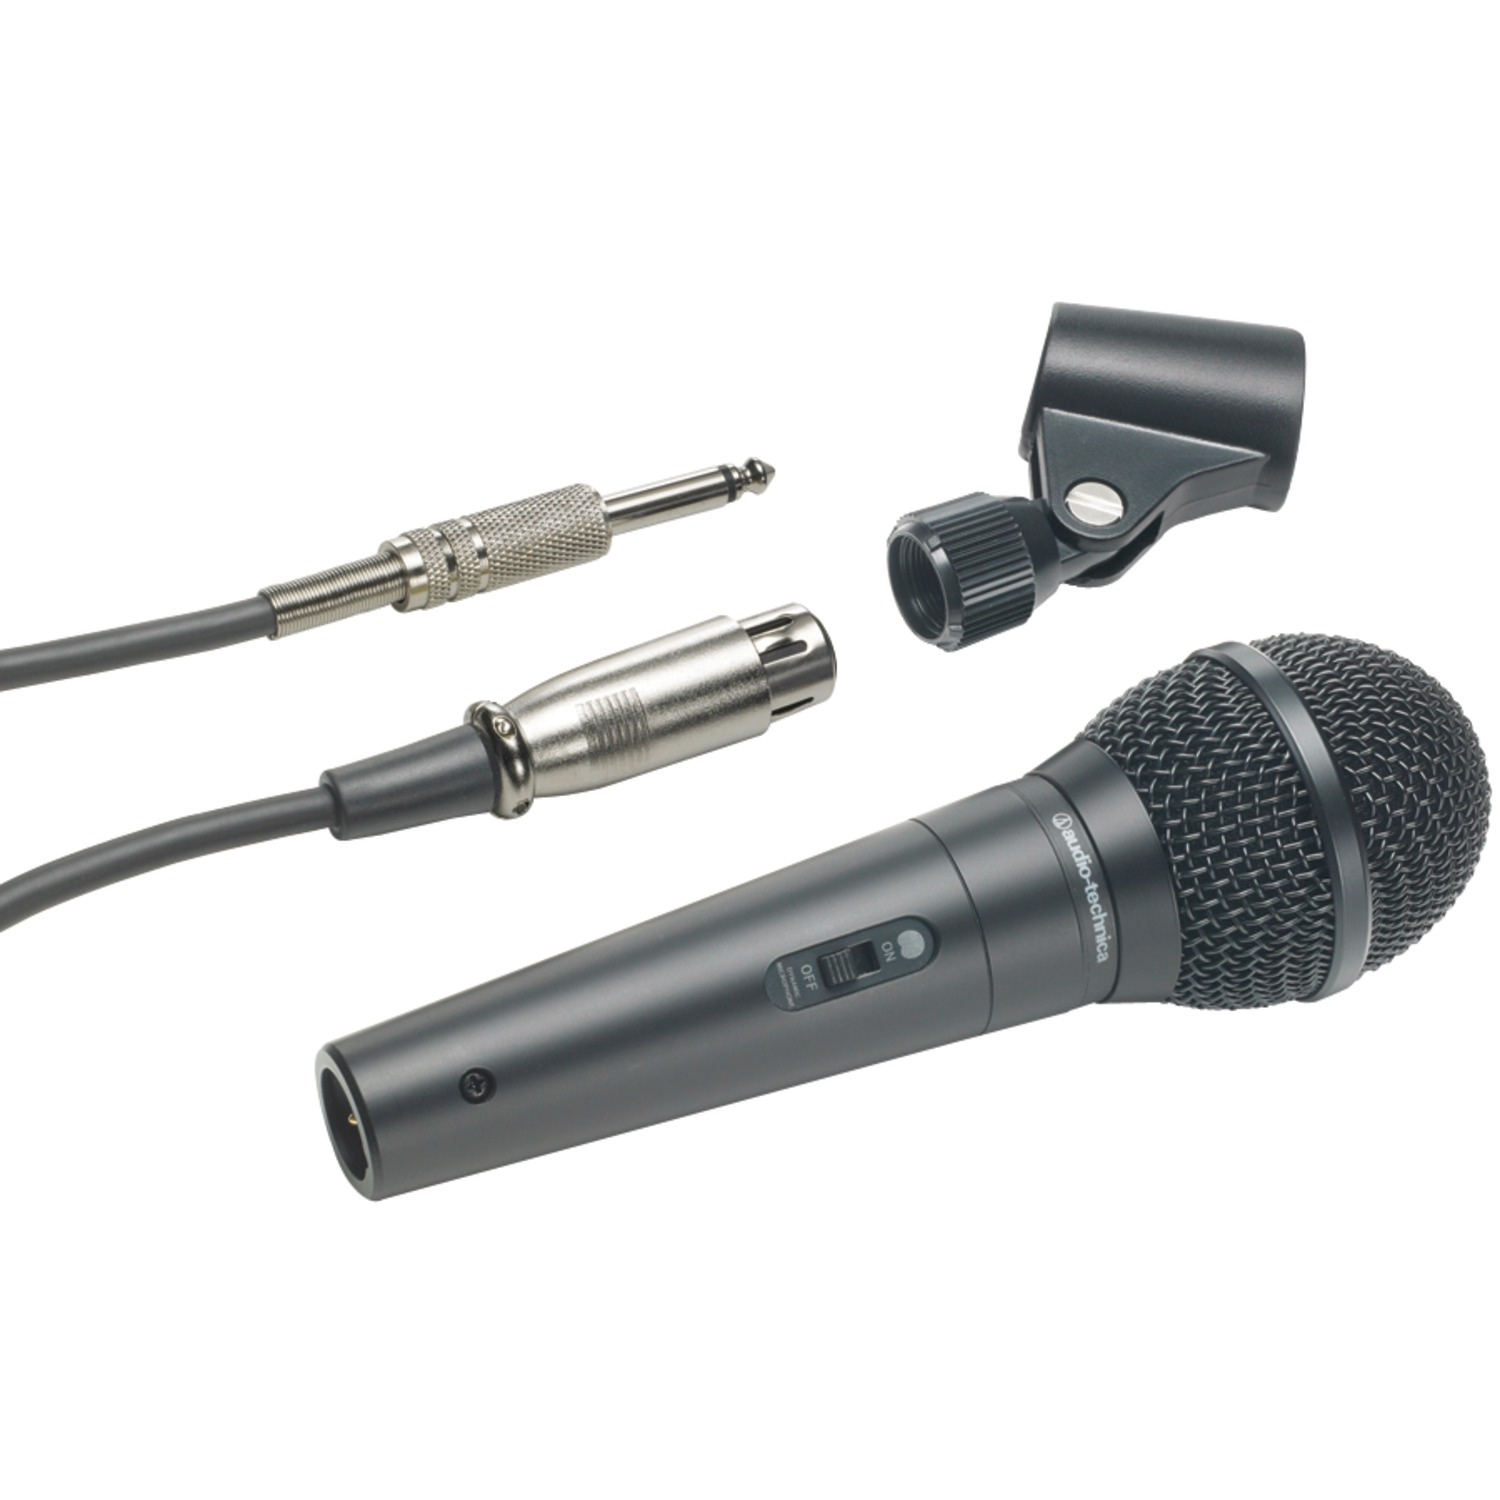 Audio-Technica ATR-1300 ATR Series Dynamic Vocal/Instrument Microphone (Unidirectional, ATR1300)